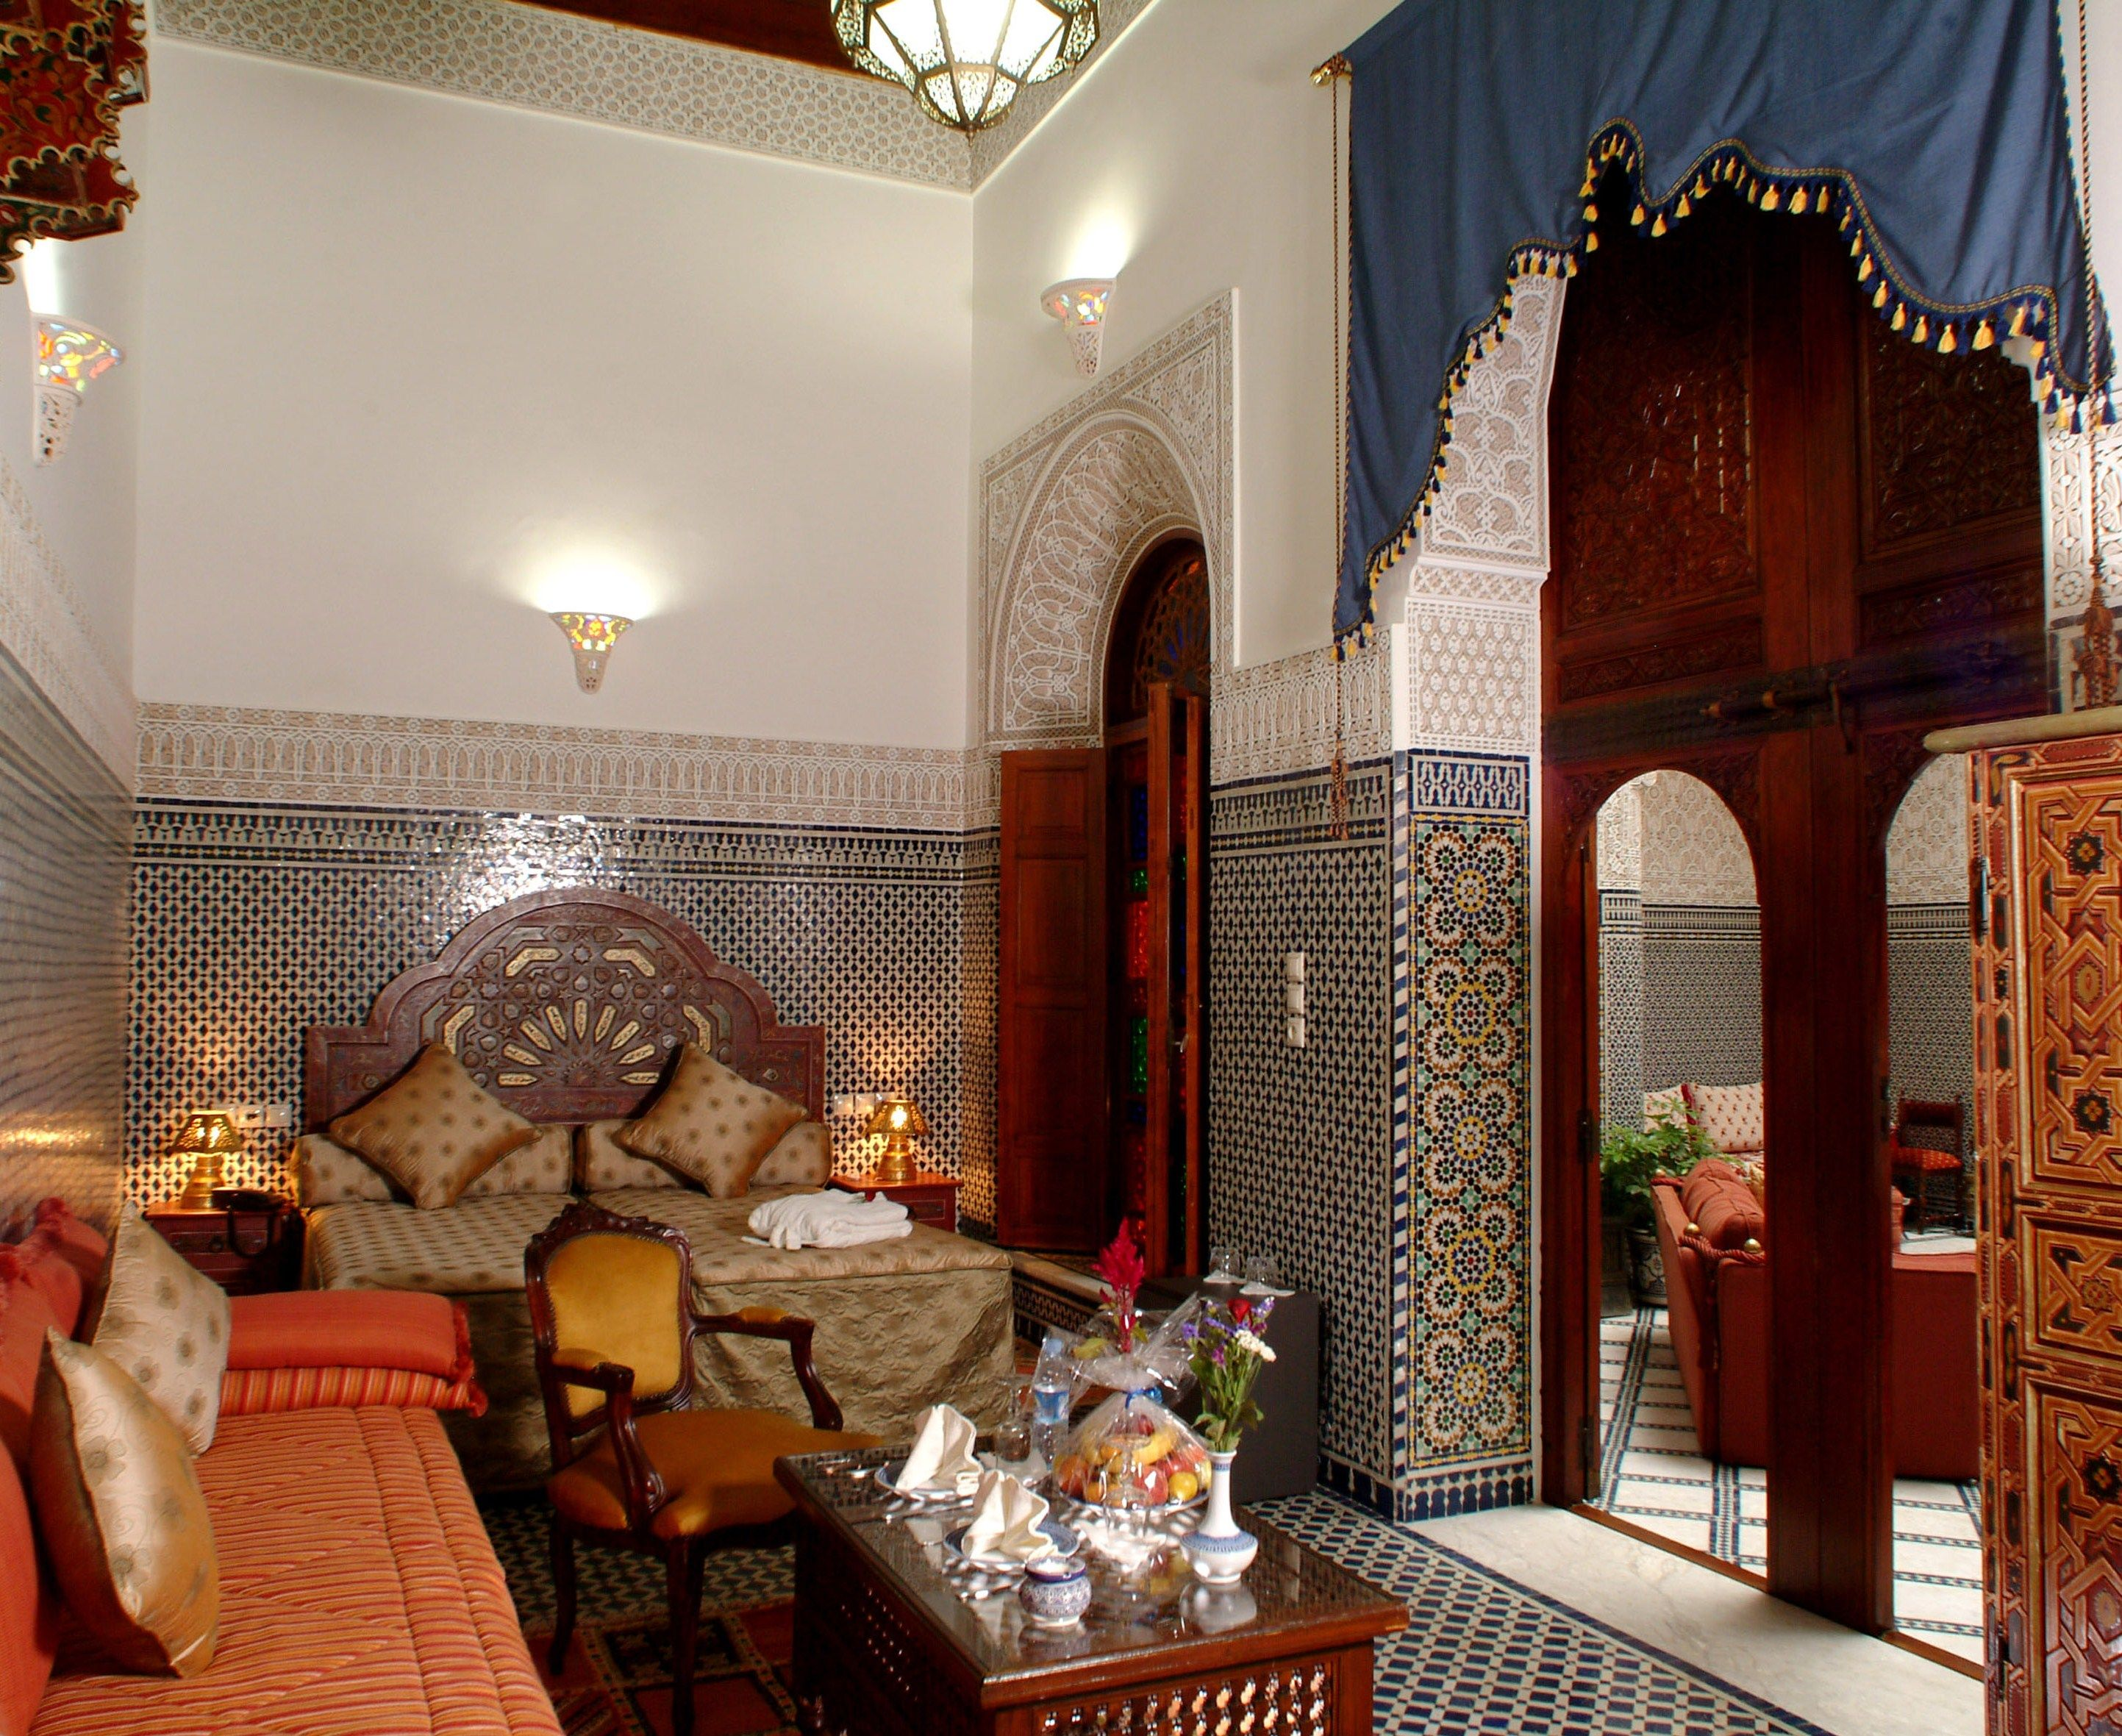 Maroc Decoration Interieur Azrou Morocco Riad Moroccan Styles And Interior